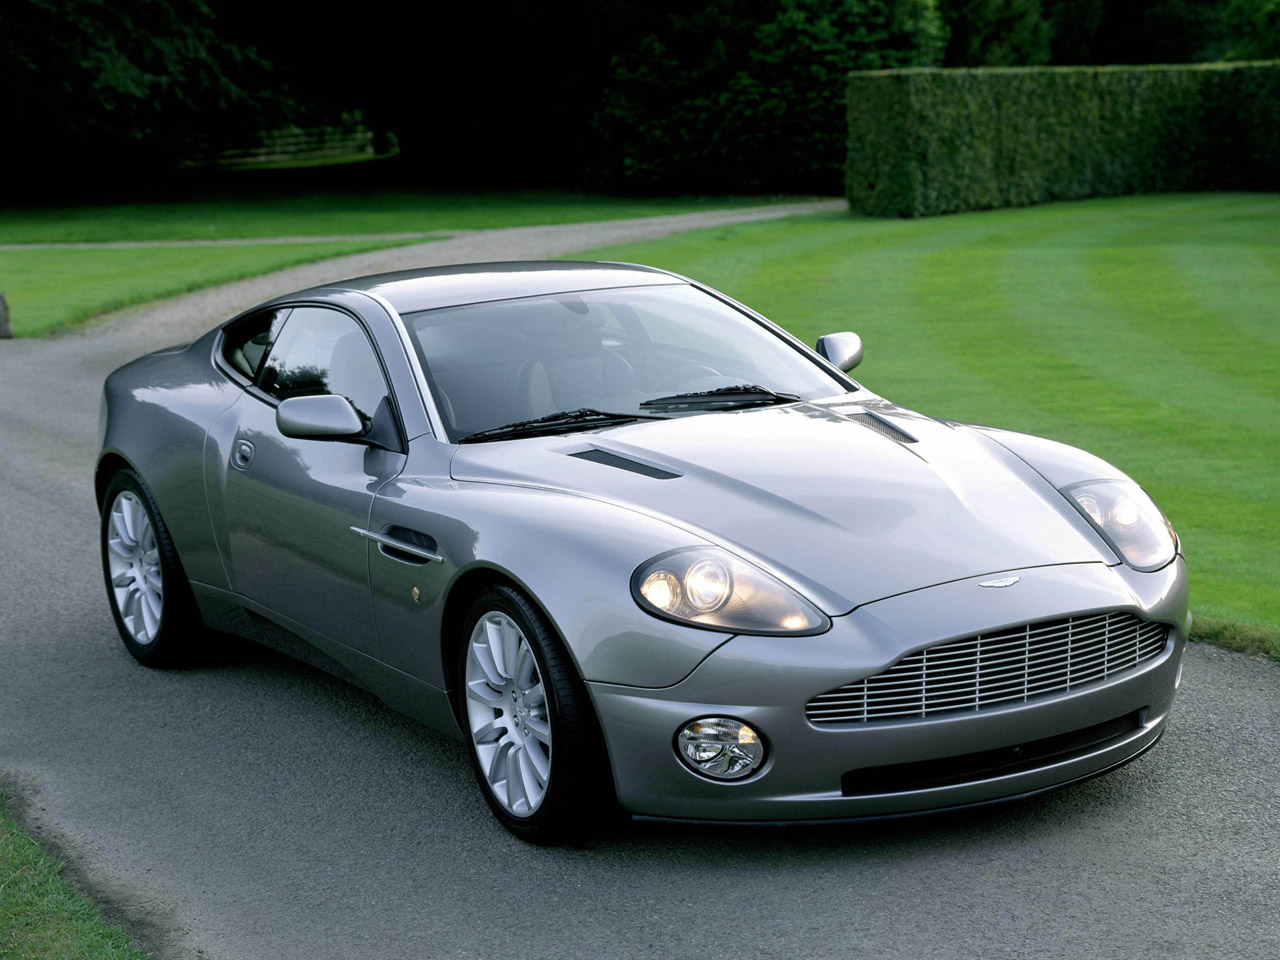 Aston Martin Vanquish Wikipedia The Free Encyclopedia | Review Ebooks